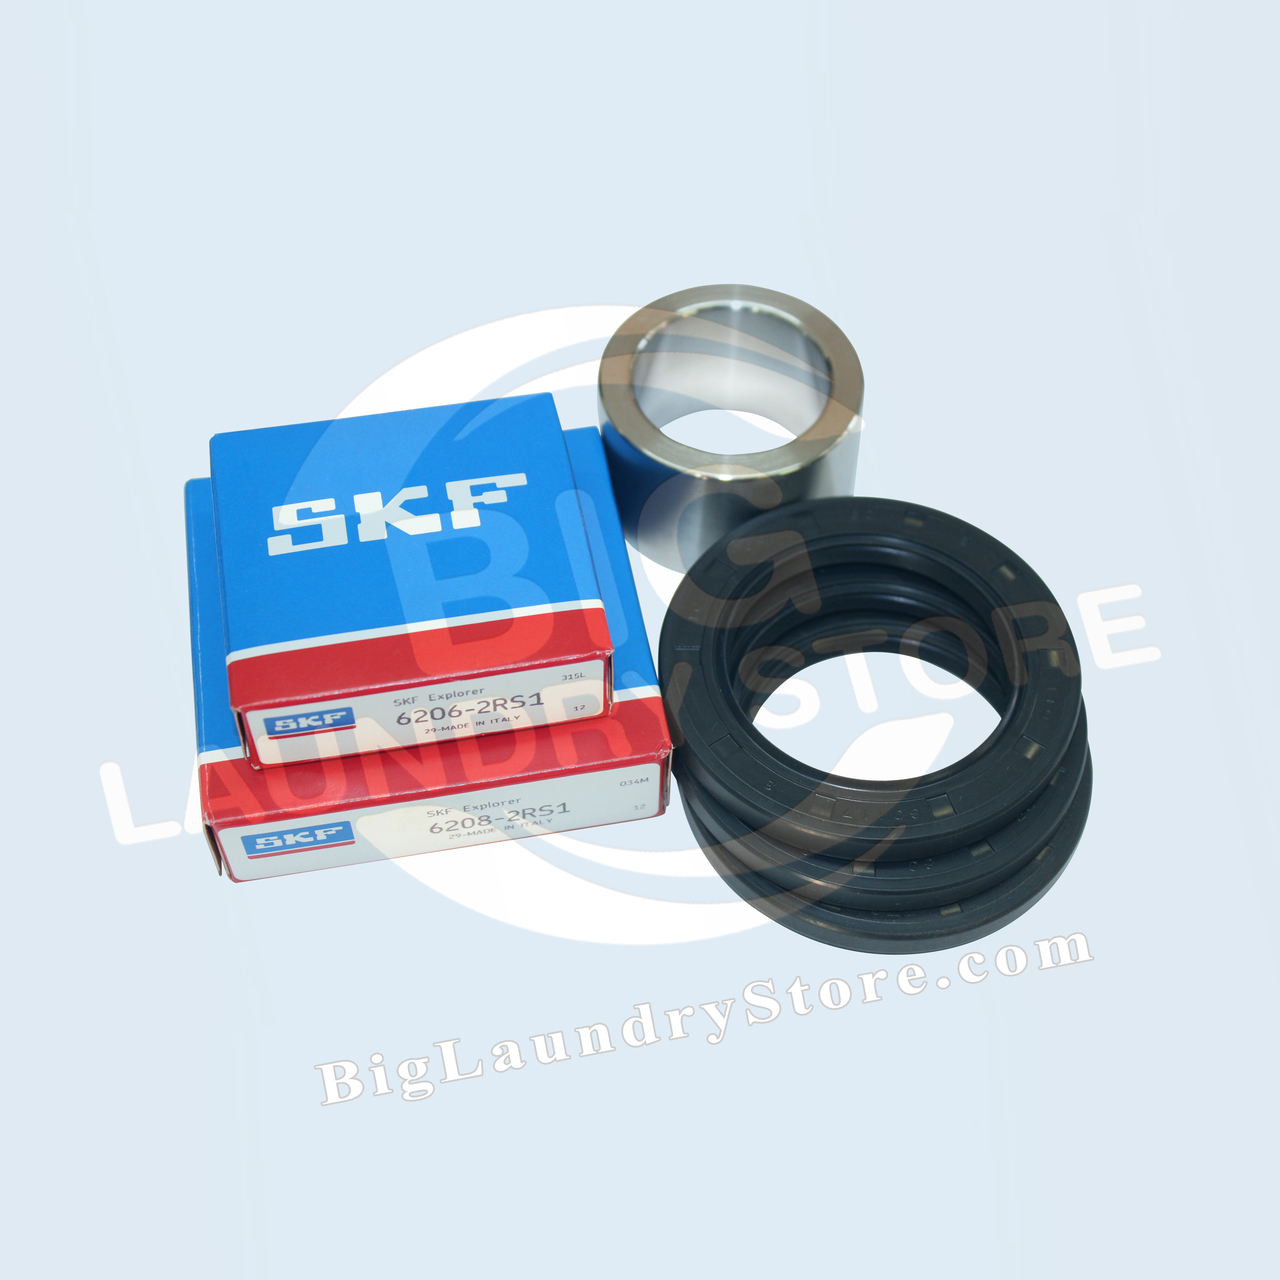 Bearing Kit for Wascomat W75 (Late) - Italy - Wascomat # 990235I